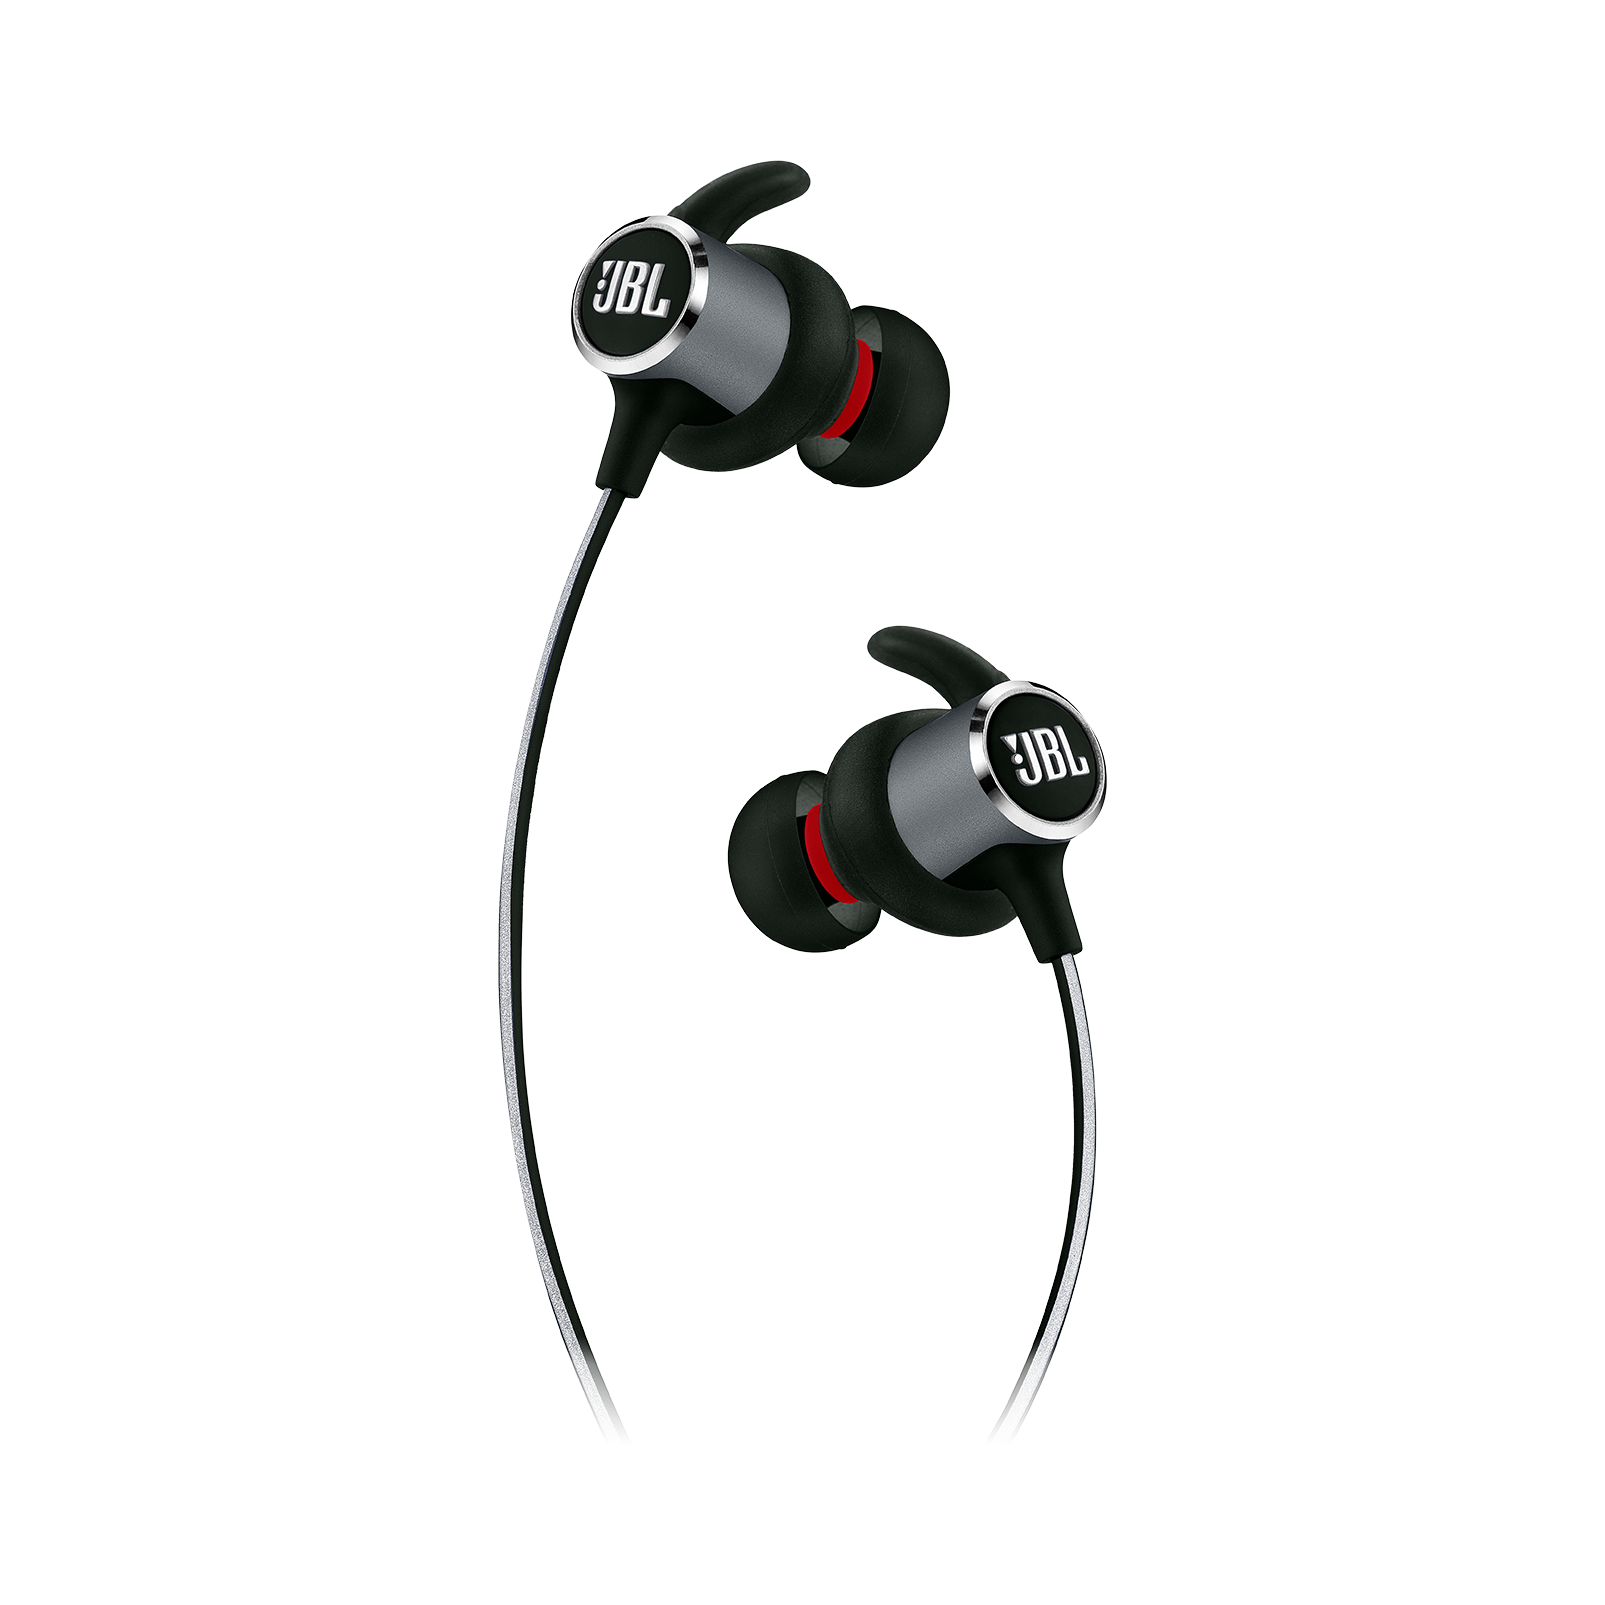 JBL REFLECT MINI 2 - Black - Lightweight Wireless Sport Headphones - Detailshot 2